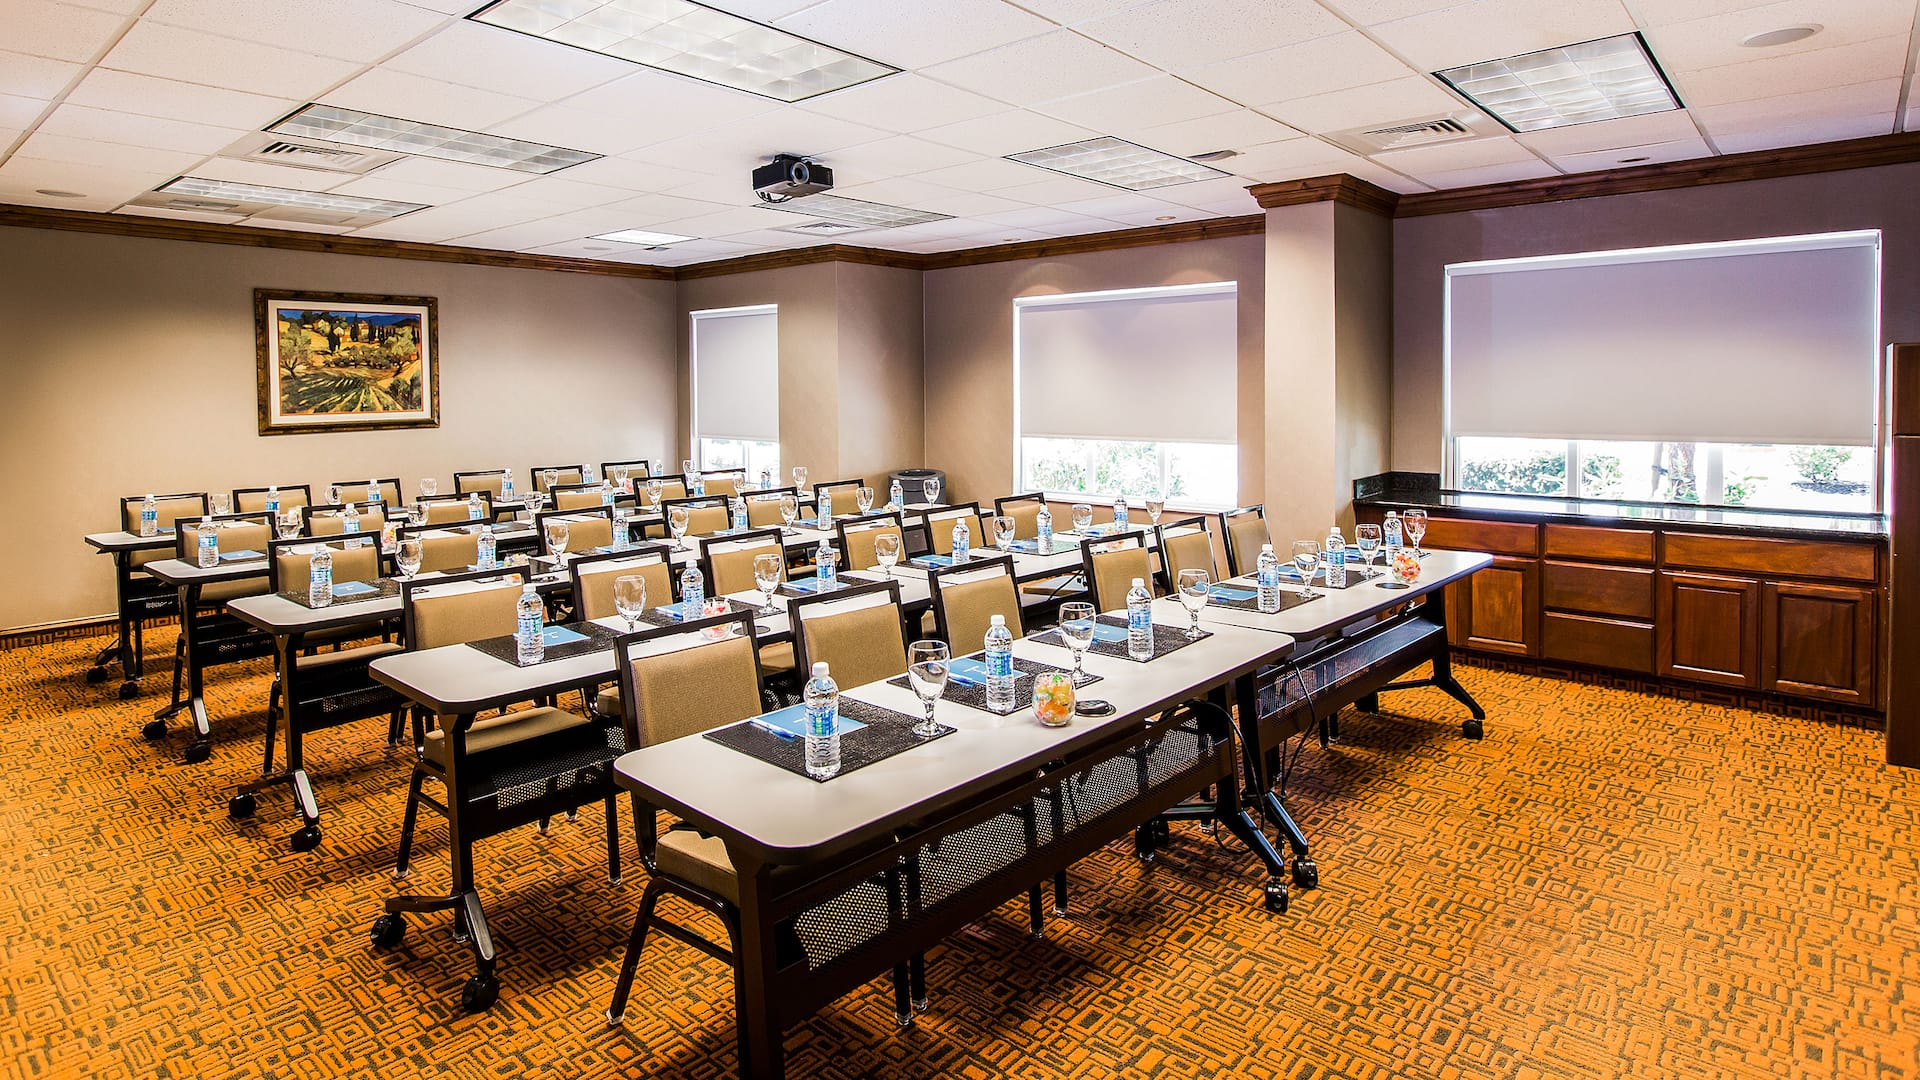 Meeting Space in Santa Clara, CA – Hyatt House Hotel Santa Clara